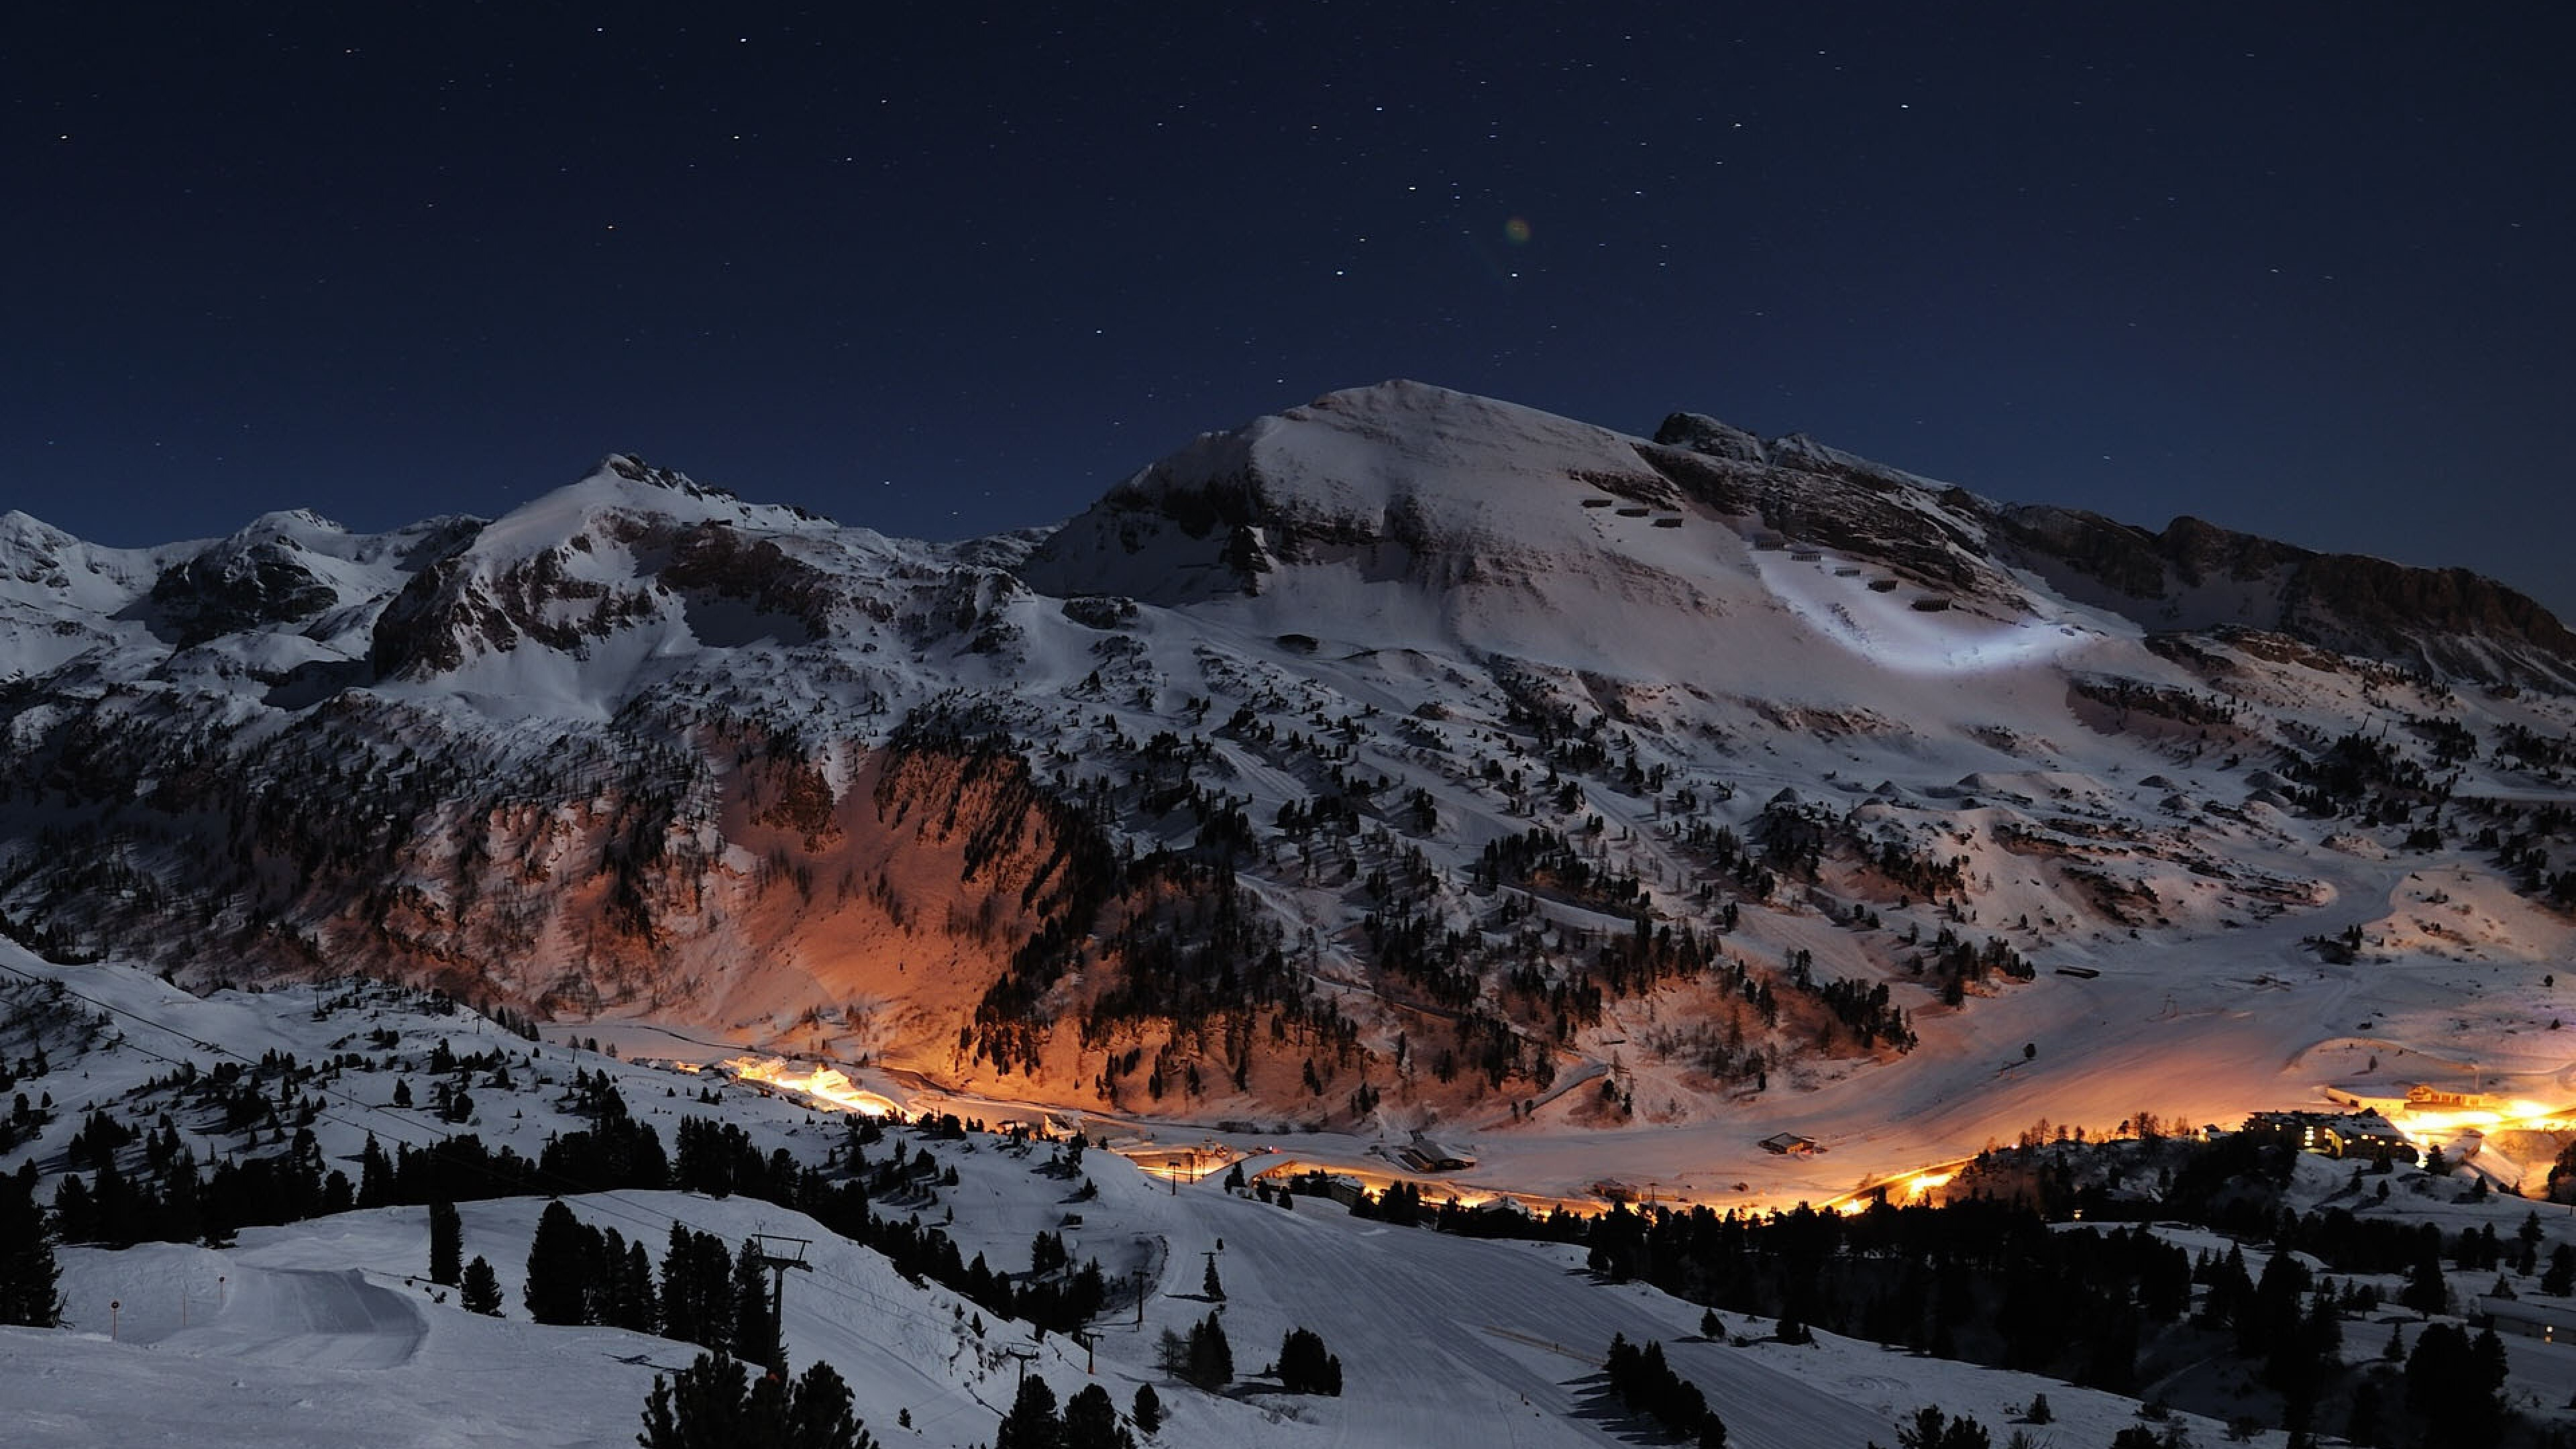 3840x2160 Night Star Alps 4k HD 4k Wallpapers, Images ...